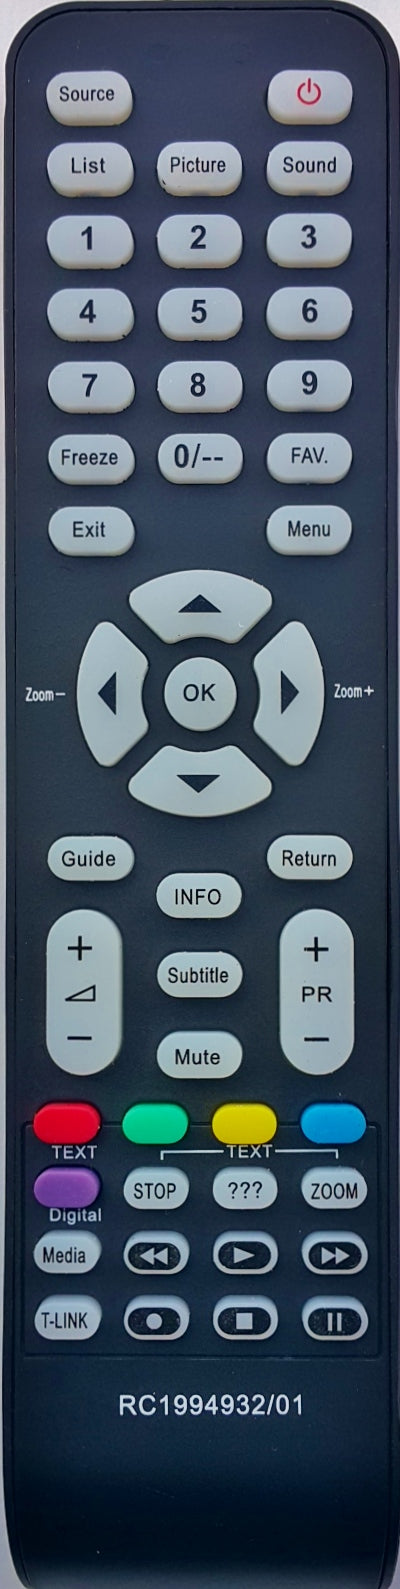 REPLACEMENT TCL REMOTE CONTROL RC1994932/01 -  L26M9HD L32M9HD L42M9FHD L32M11HD L40M11FHD L19M19  L22M19 L32M19  L32P10FHD L32P10R L42P10FZ  L55P10FHD  L32P11FZE  L40P11FZE  L46P11FZE  L55P11FZ